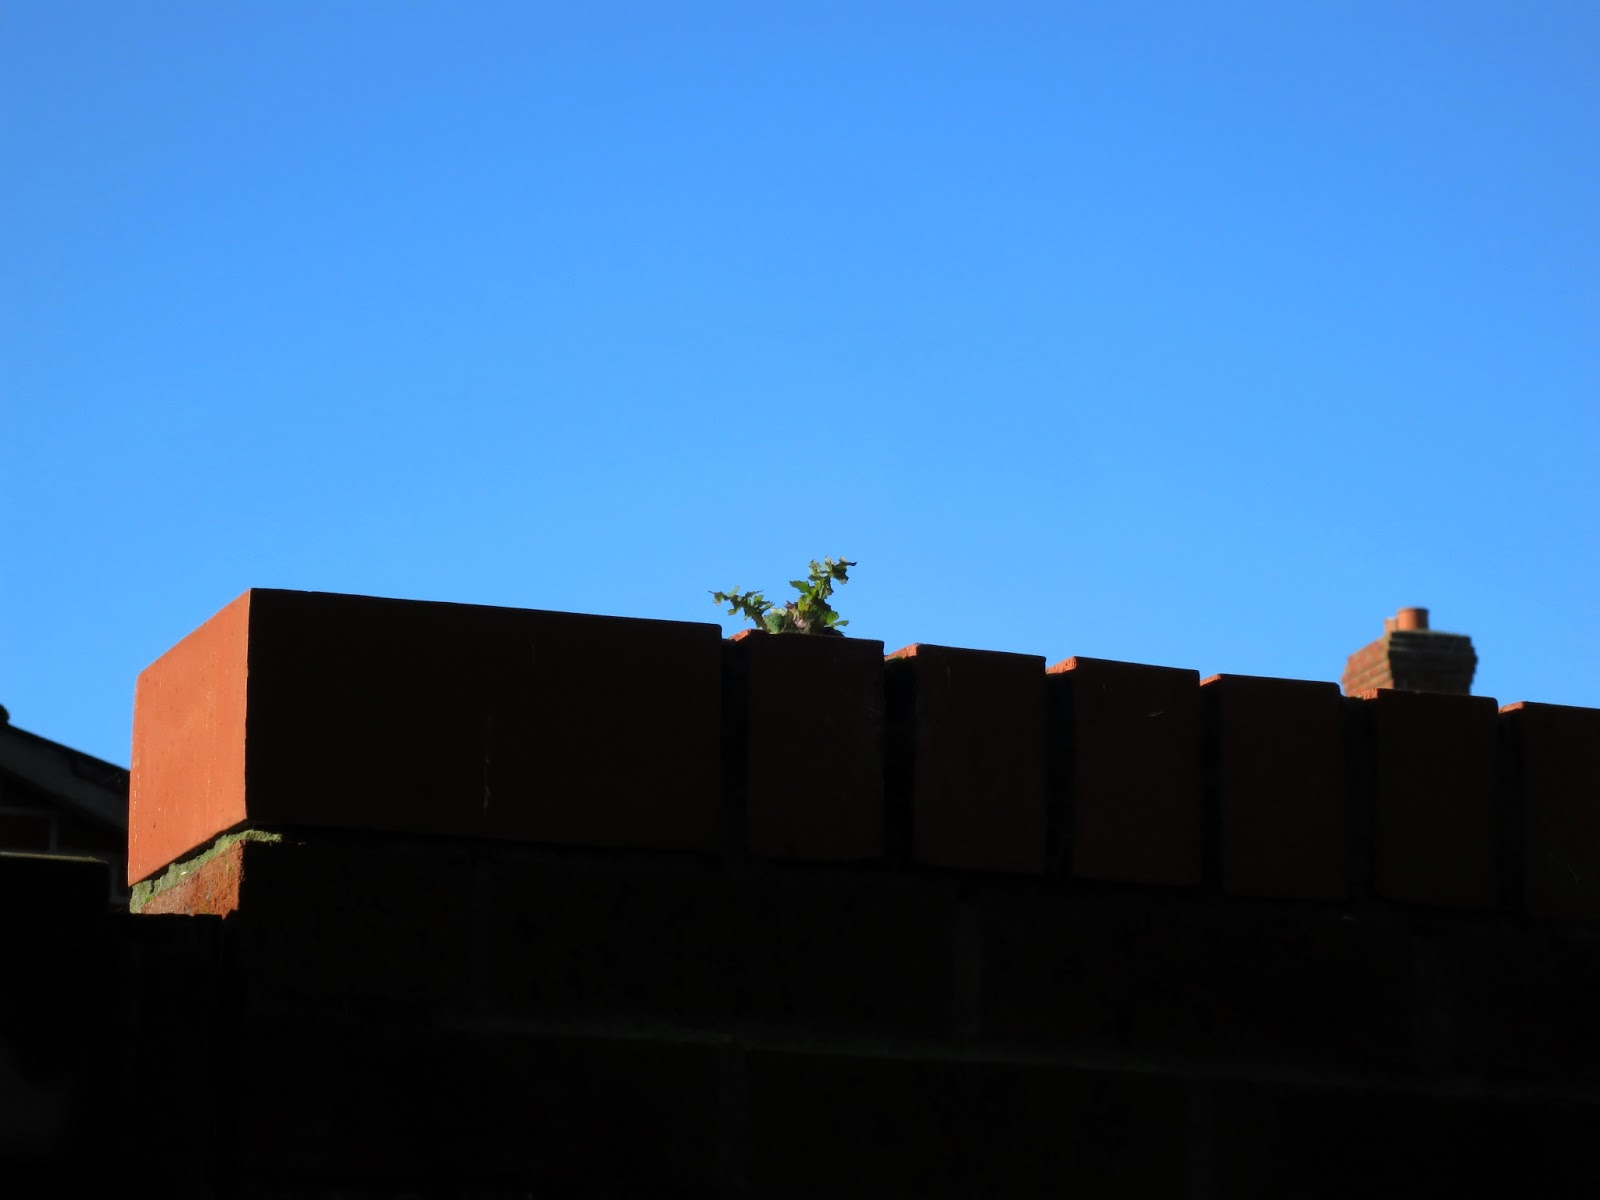 Plant growing on top of brick wall